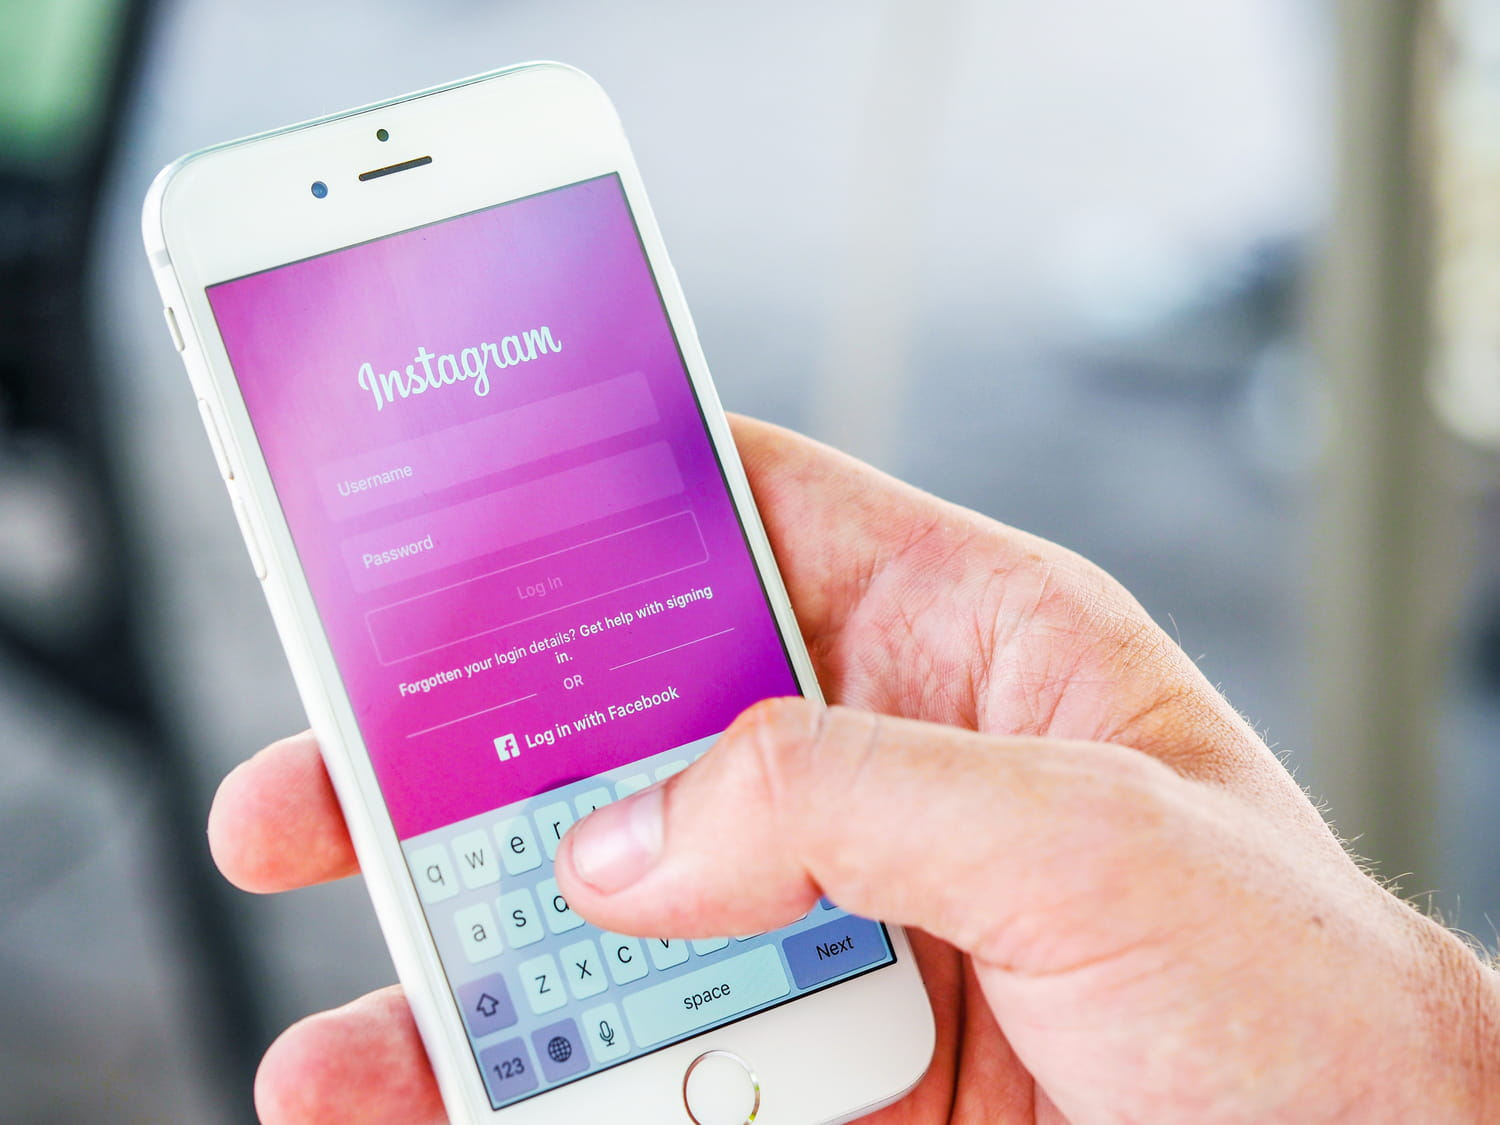 Reset Instagram password without email, using Facebook